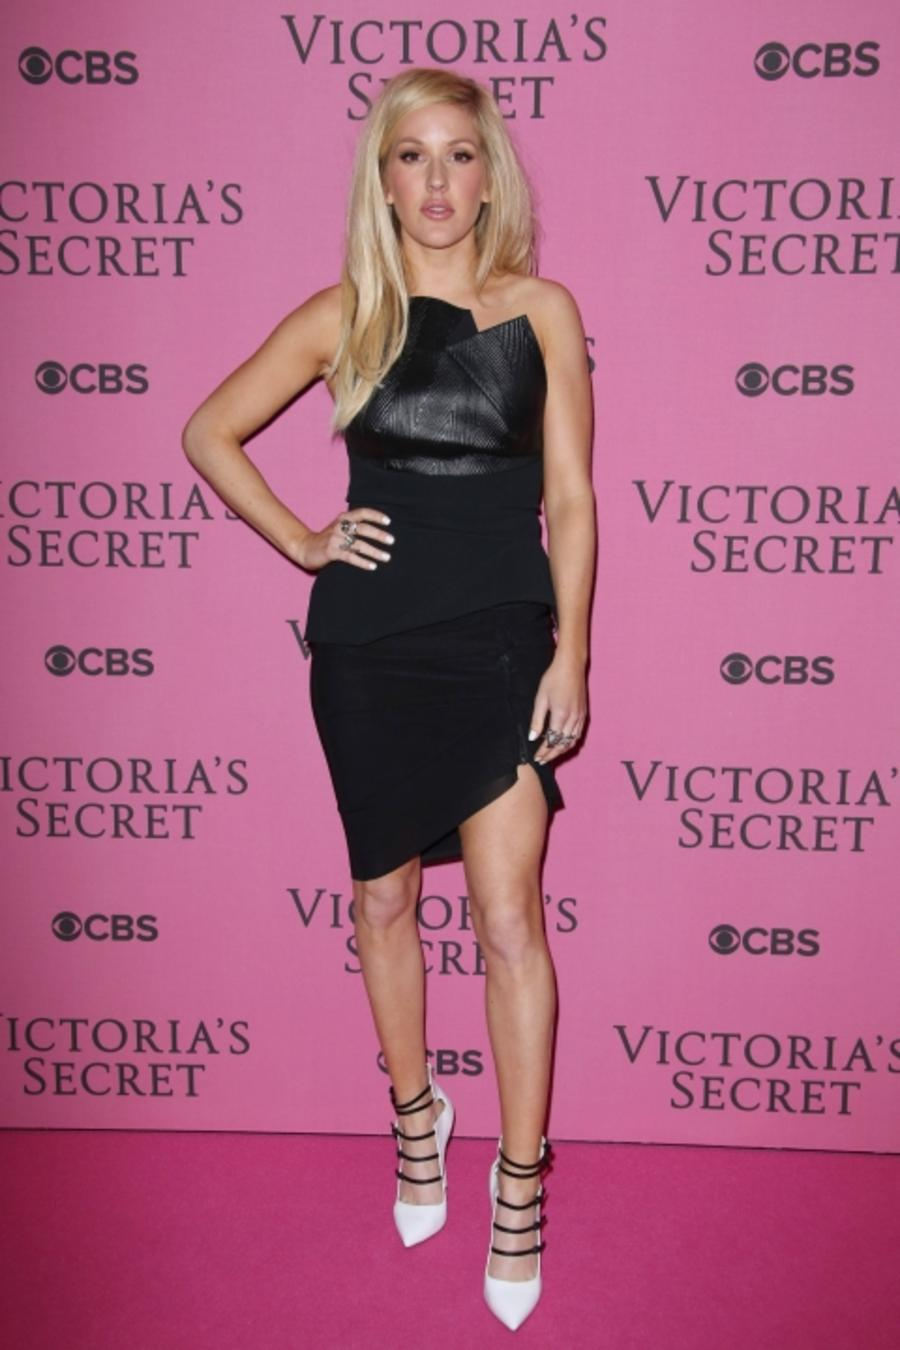 Ellie Goulding Wears A Black LBD To The Victoria's Secret Fashion Show In London, 2014